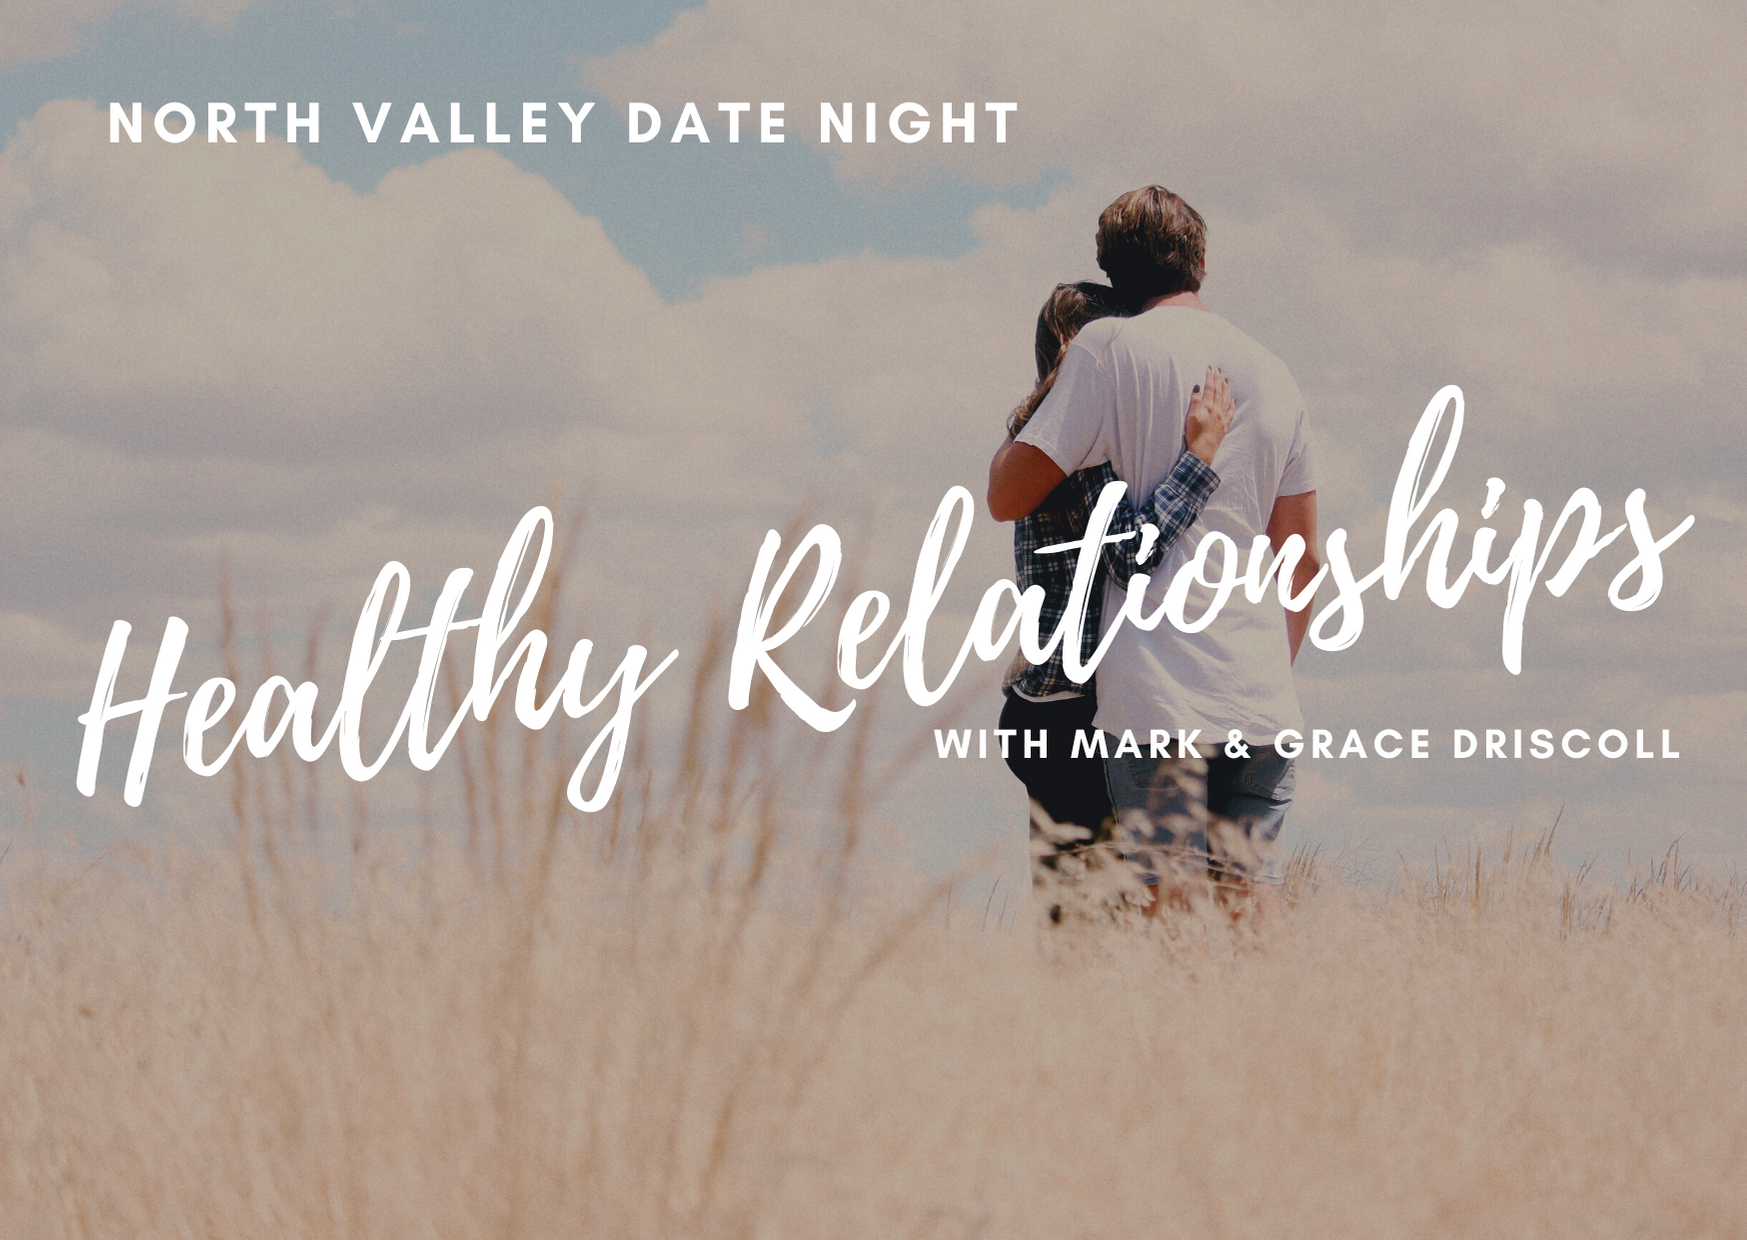 healthy-relationships-event image